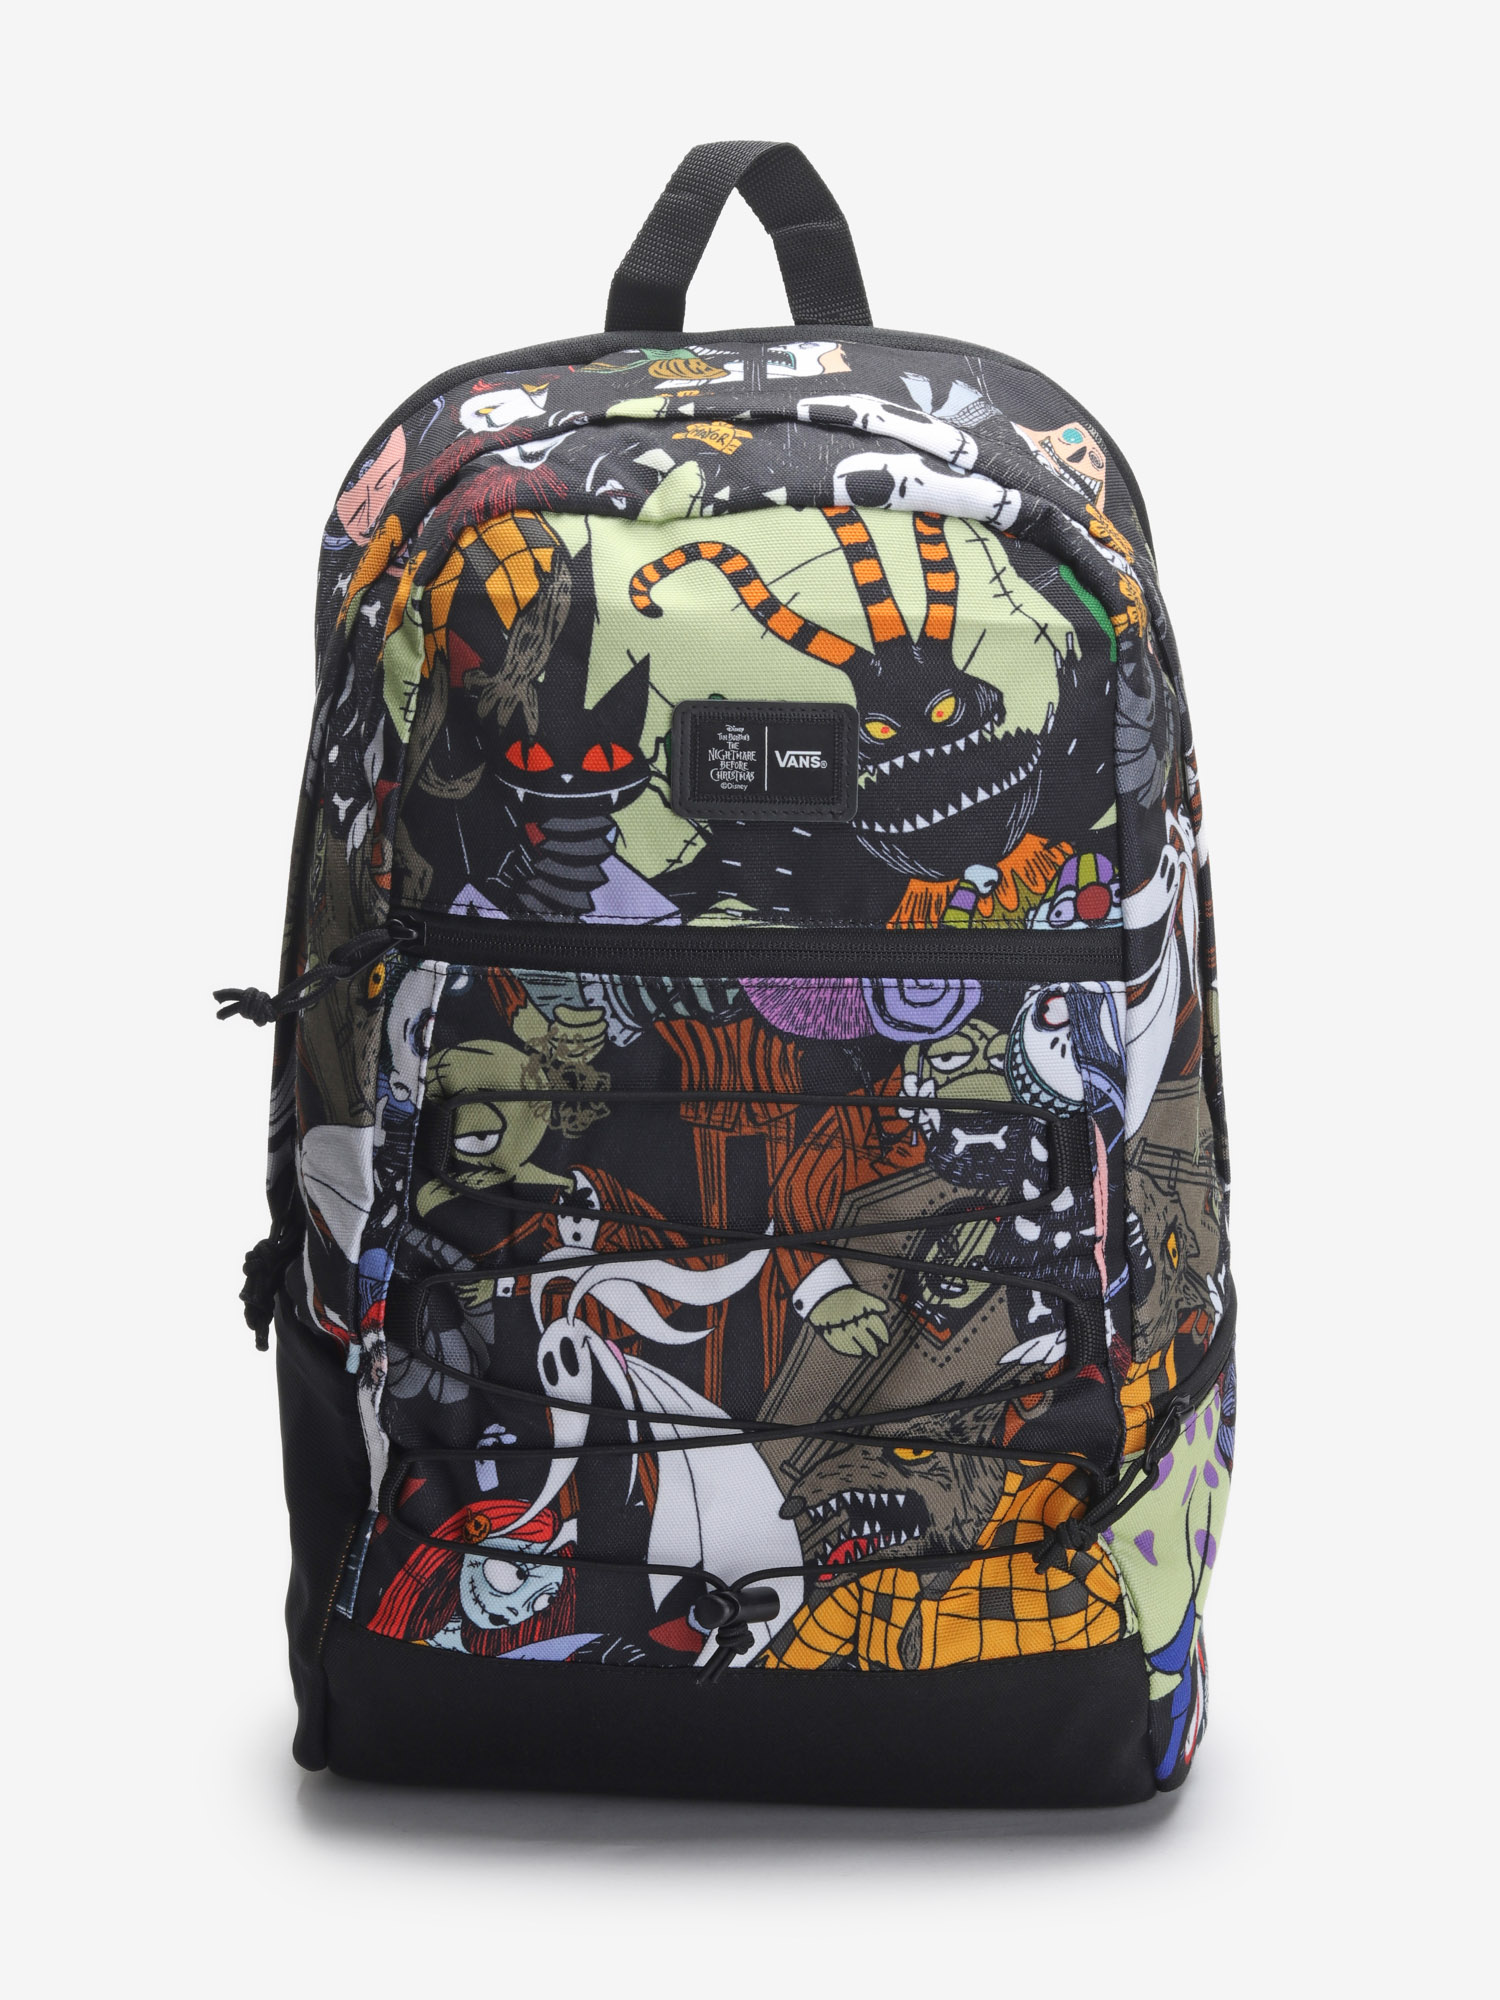 Batoh Vans Mn Snag Plus Backpack (Disney) Multi Barevná